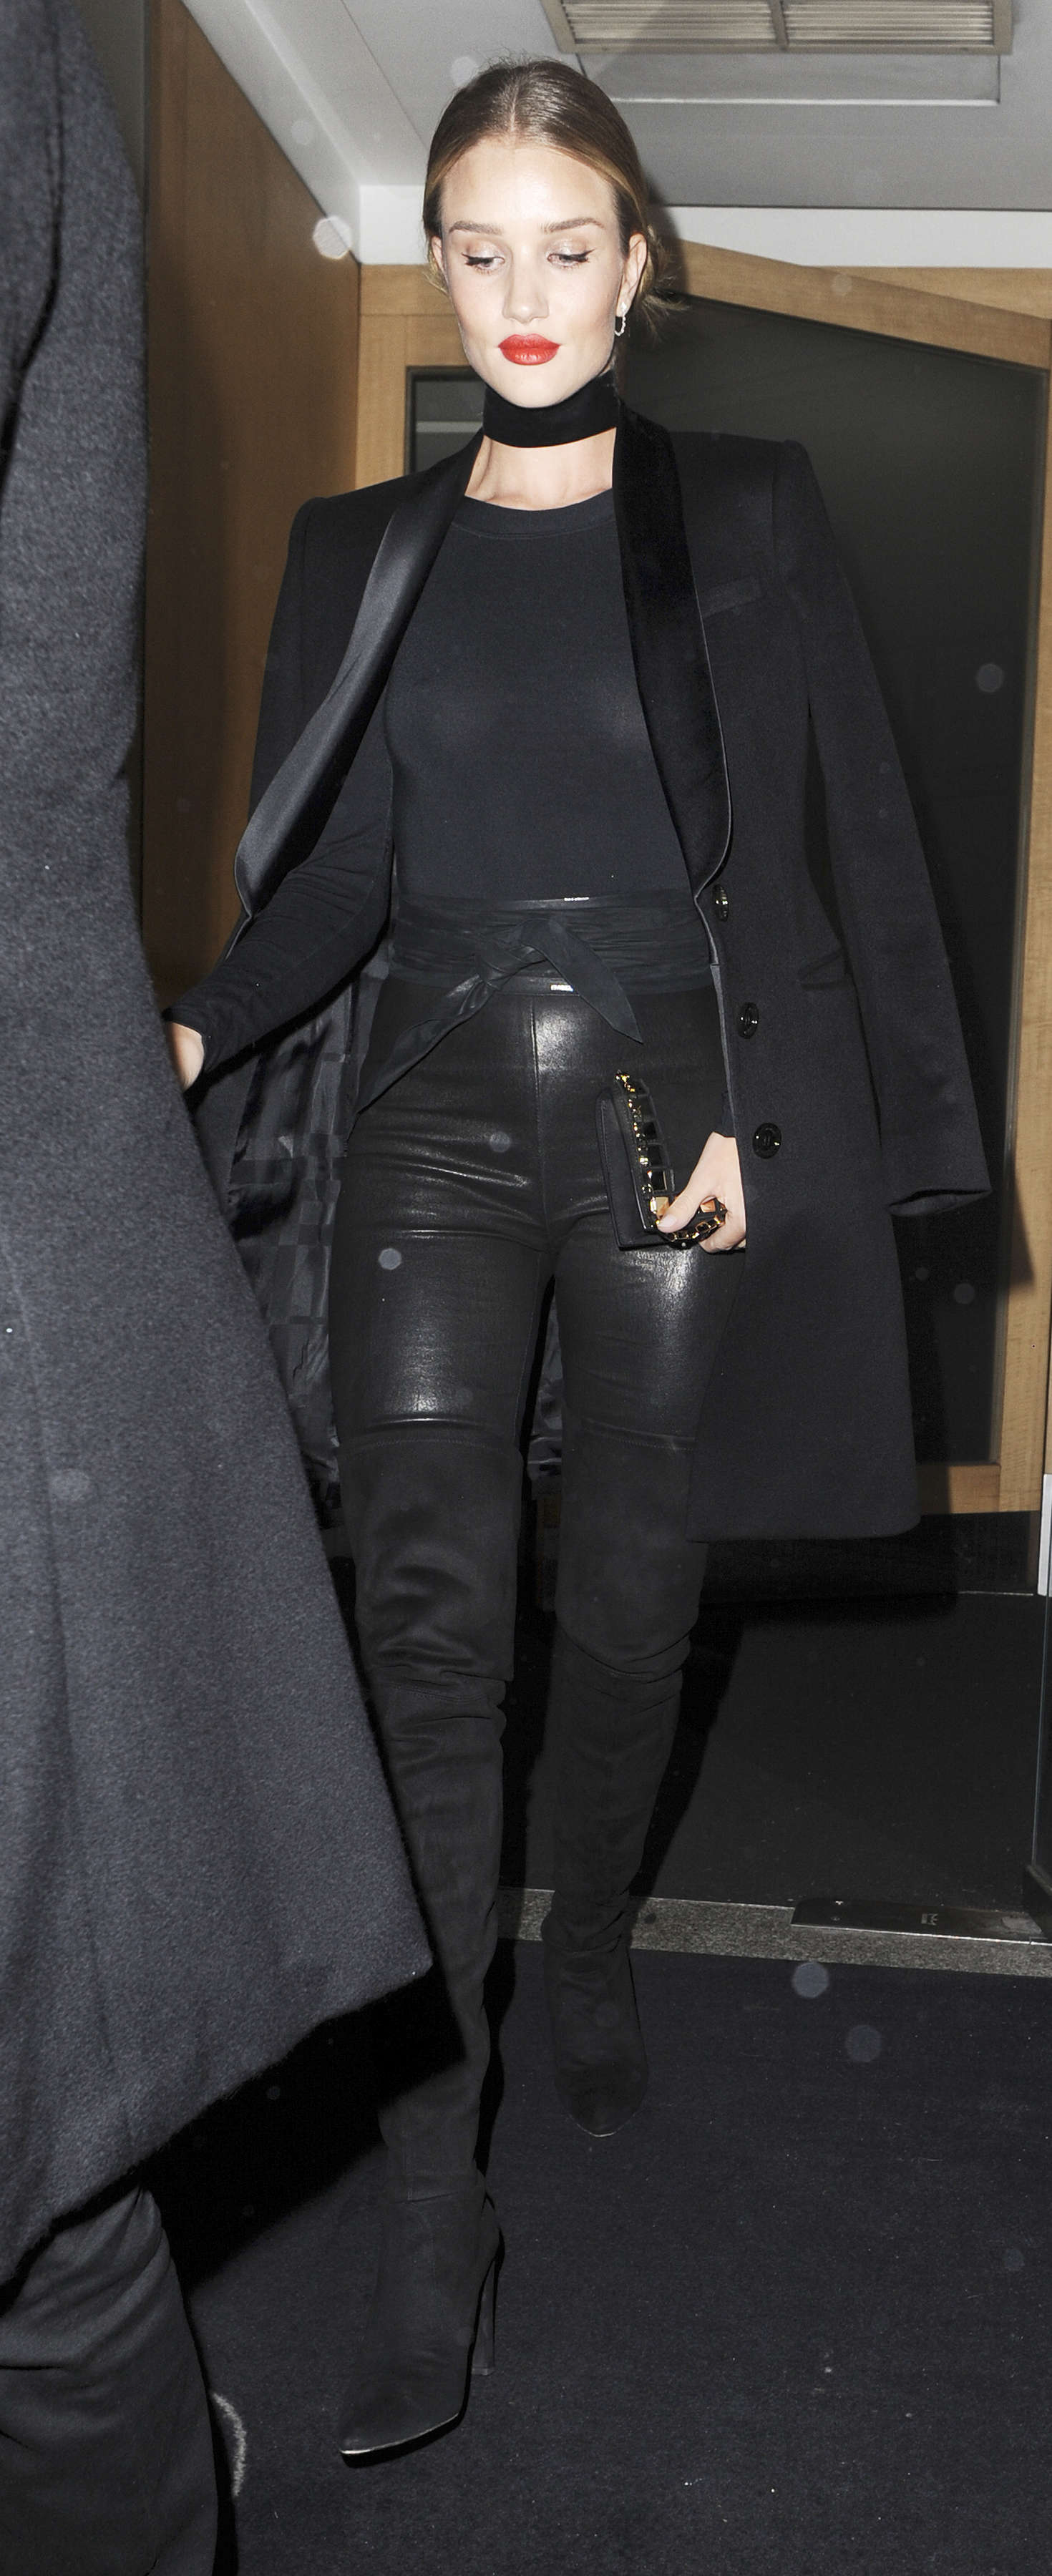 Rosie Huntington Whiteley leaves Nobu restaurant Rosie Huntington Whiteley